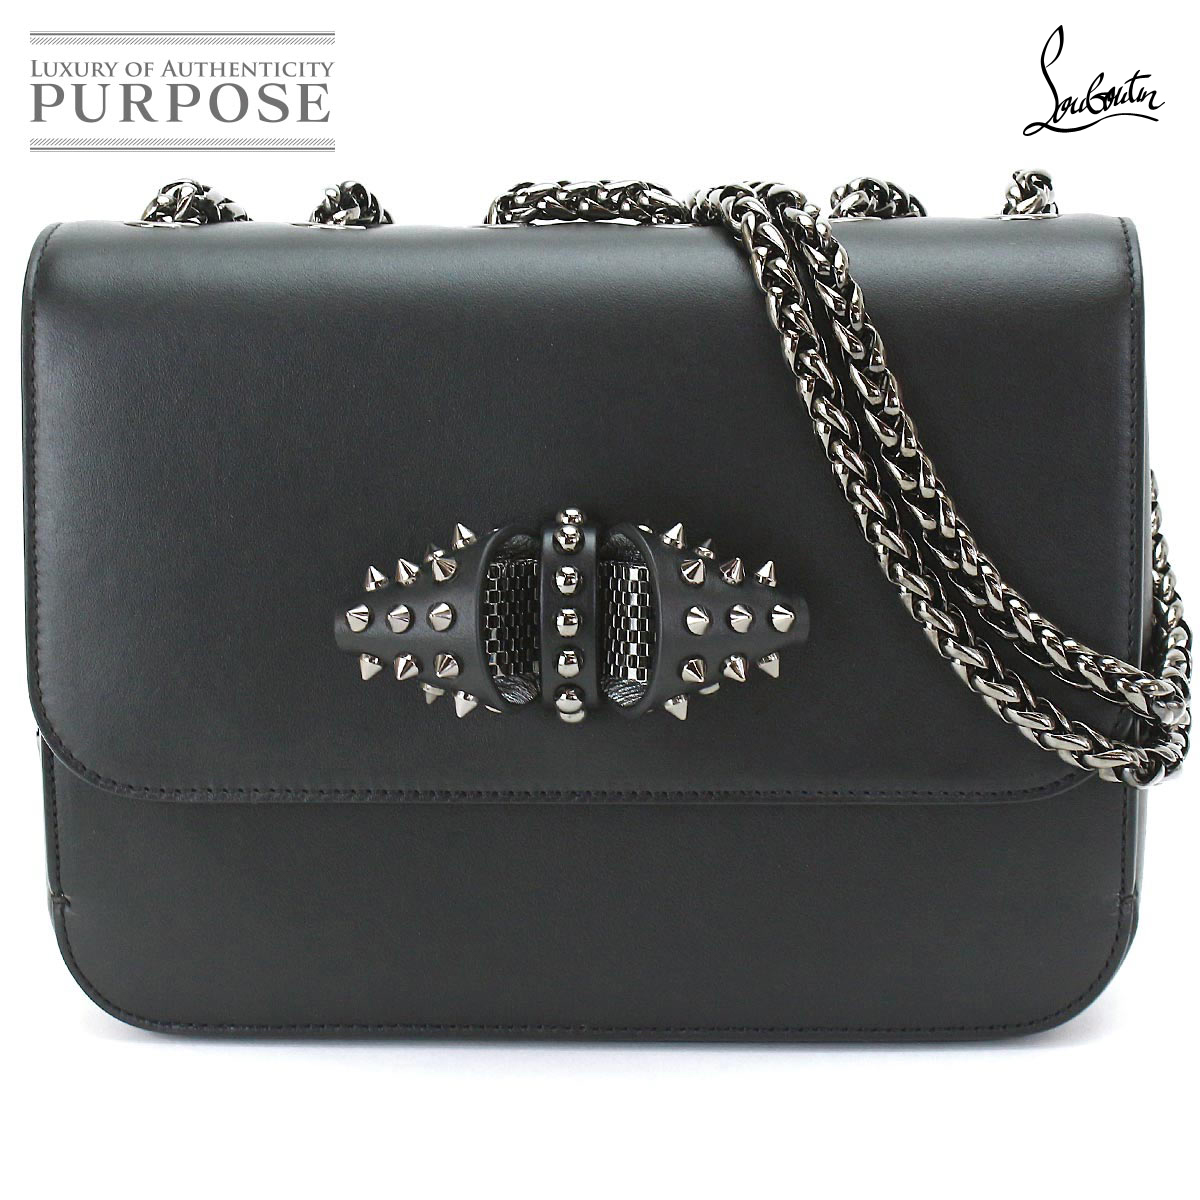 685f171bea8 クリスチャンルブタン Christian Louboutin suite charity shoulder bag leather black  1165028